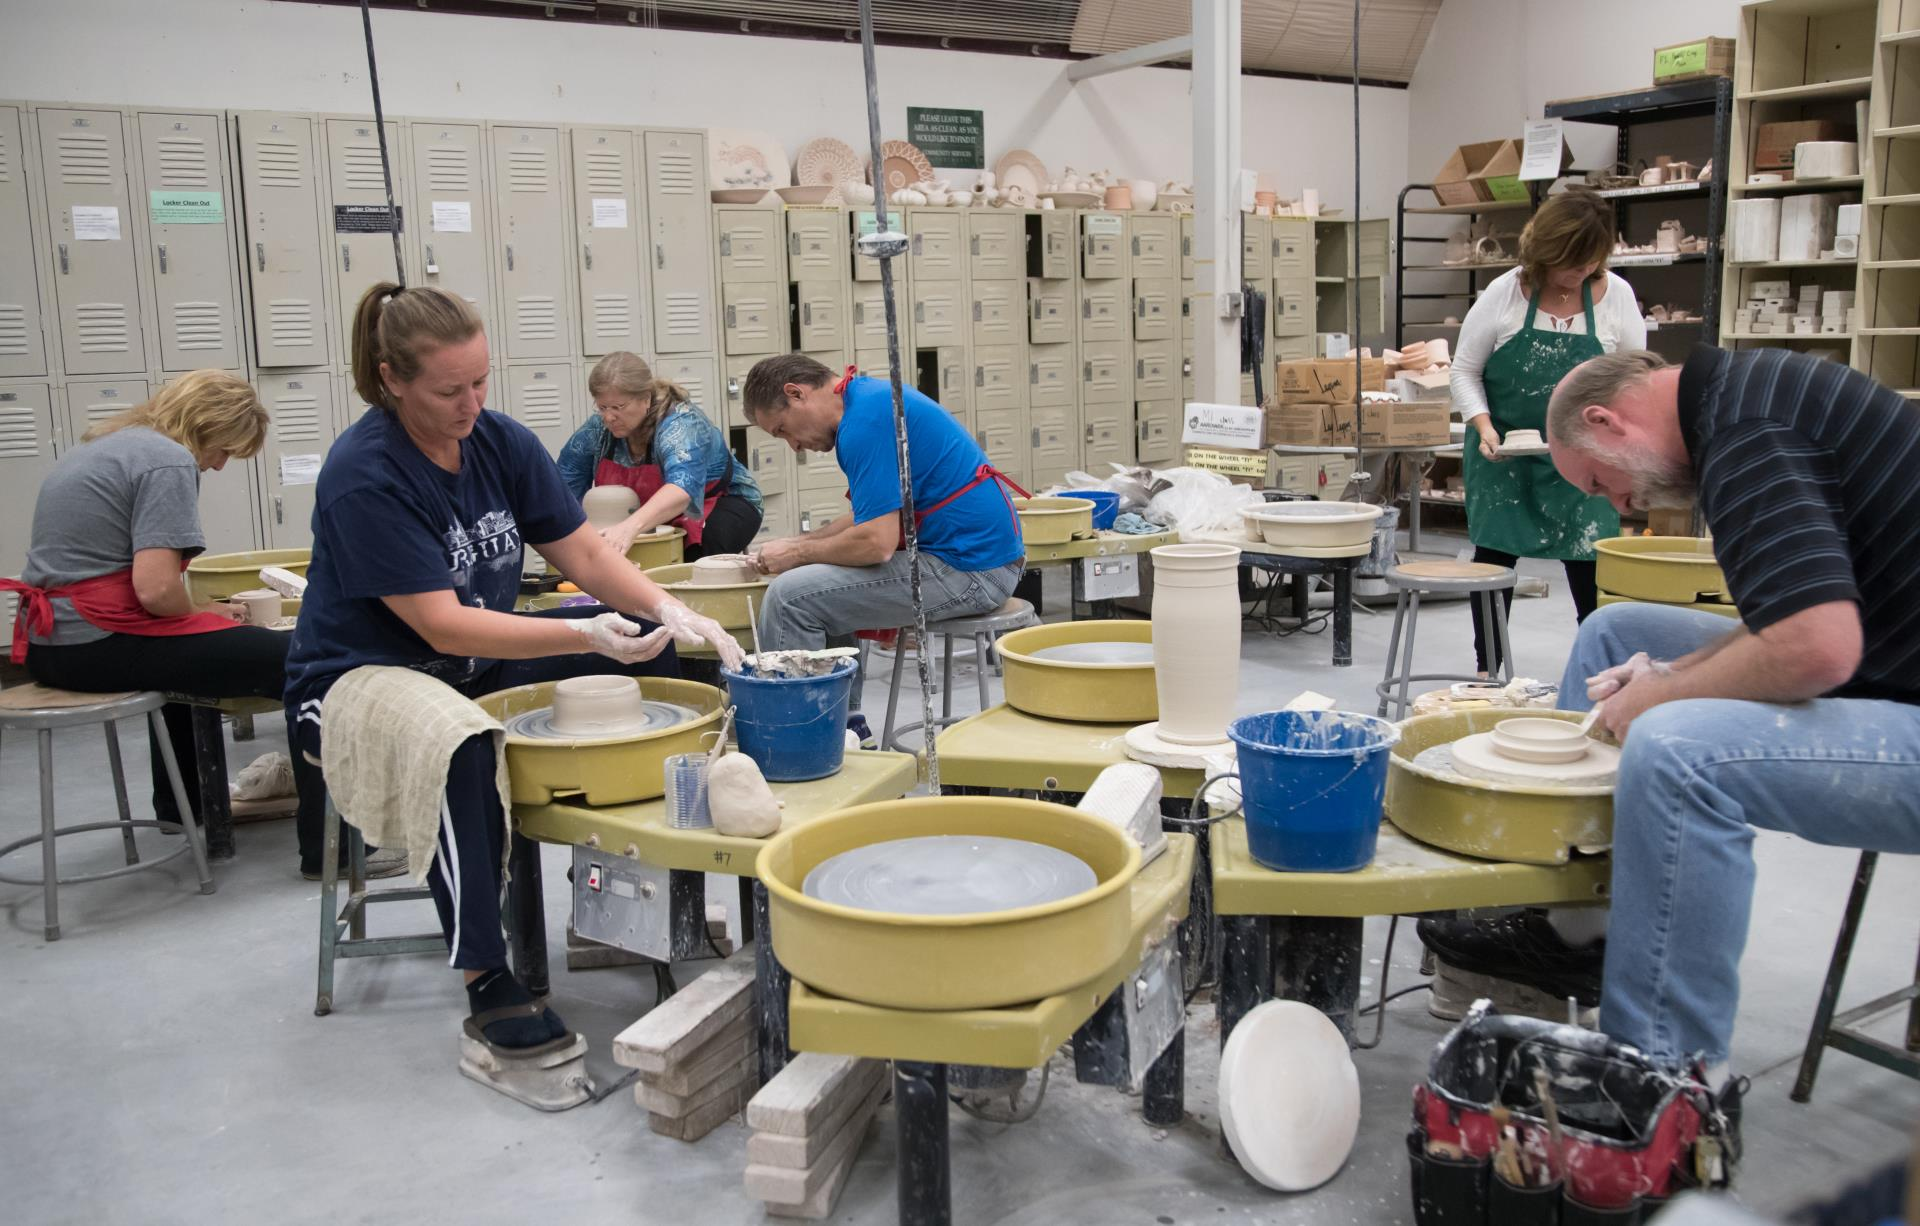 People working on ceramics in the ceramics Studio